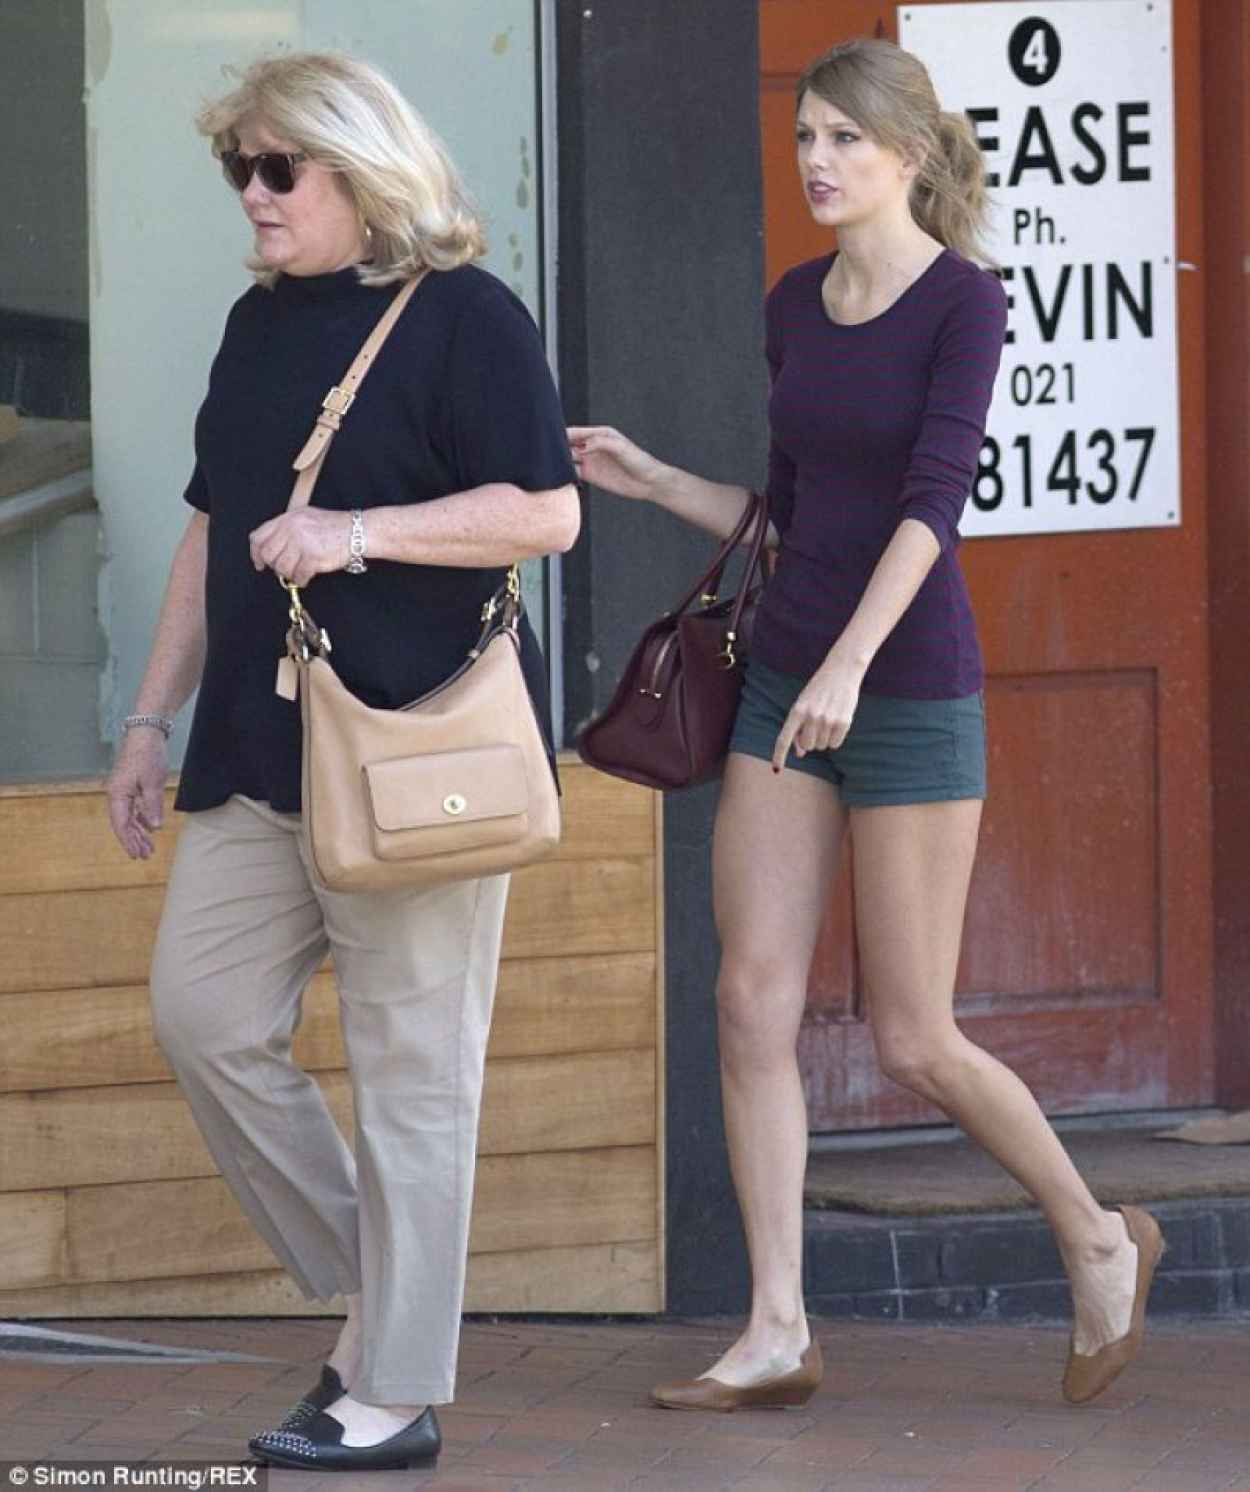 Taylor Swift Shows off Her Legs in Tinny Shorts - Out in Auckland - December 2015-1